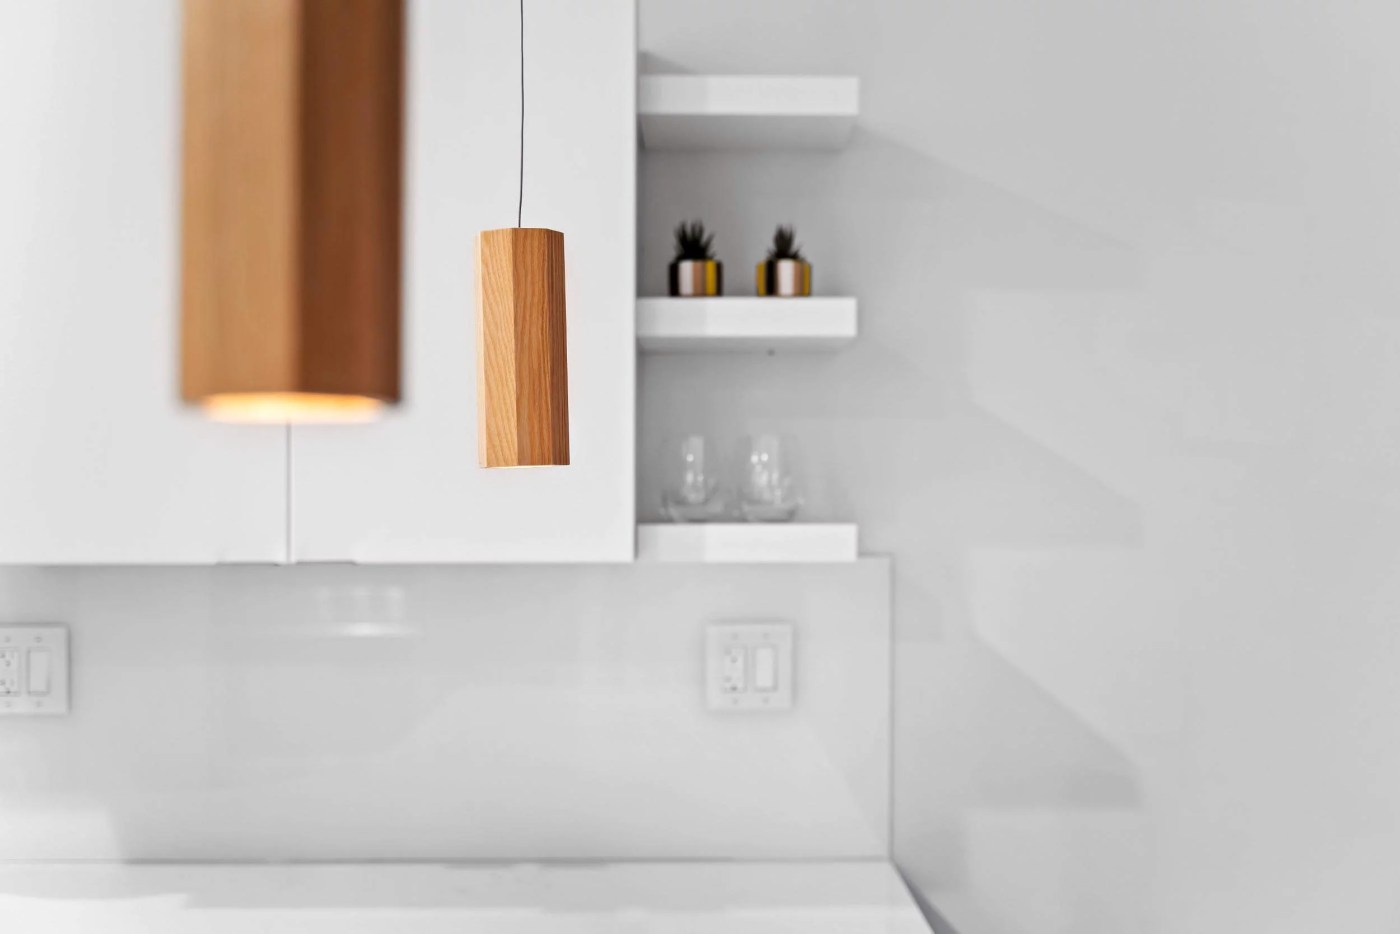 Detailed picture of a lightning fixture in the modern white kitchen